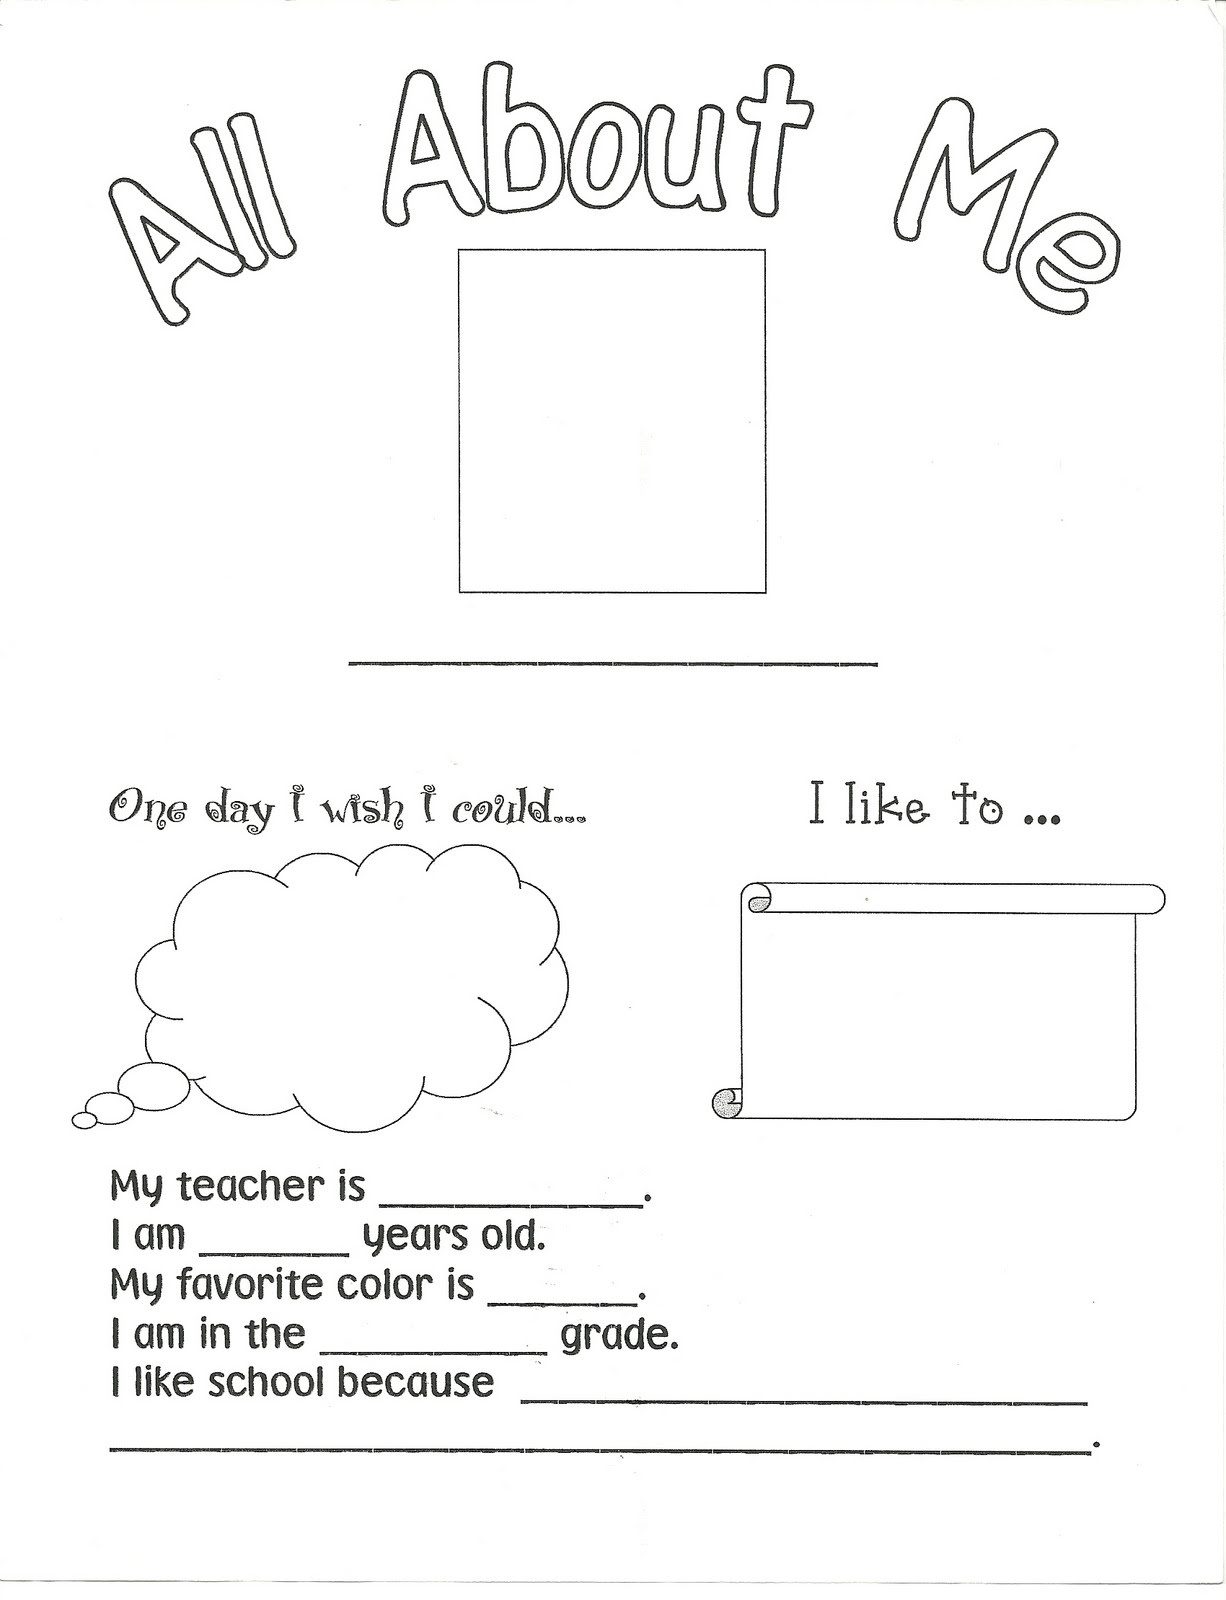 Worksheets All About Me Free Printable Worksheets child centered teaching all about me